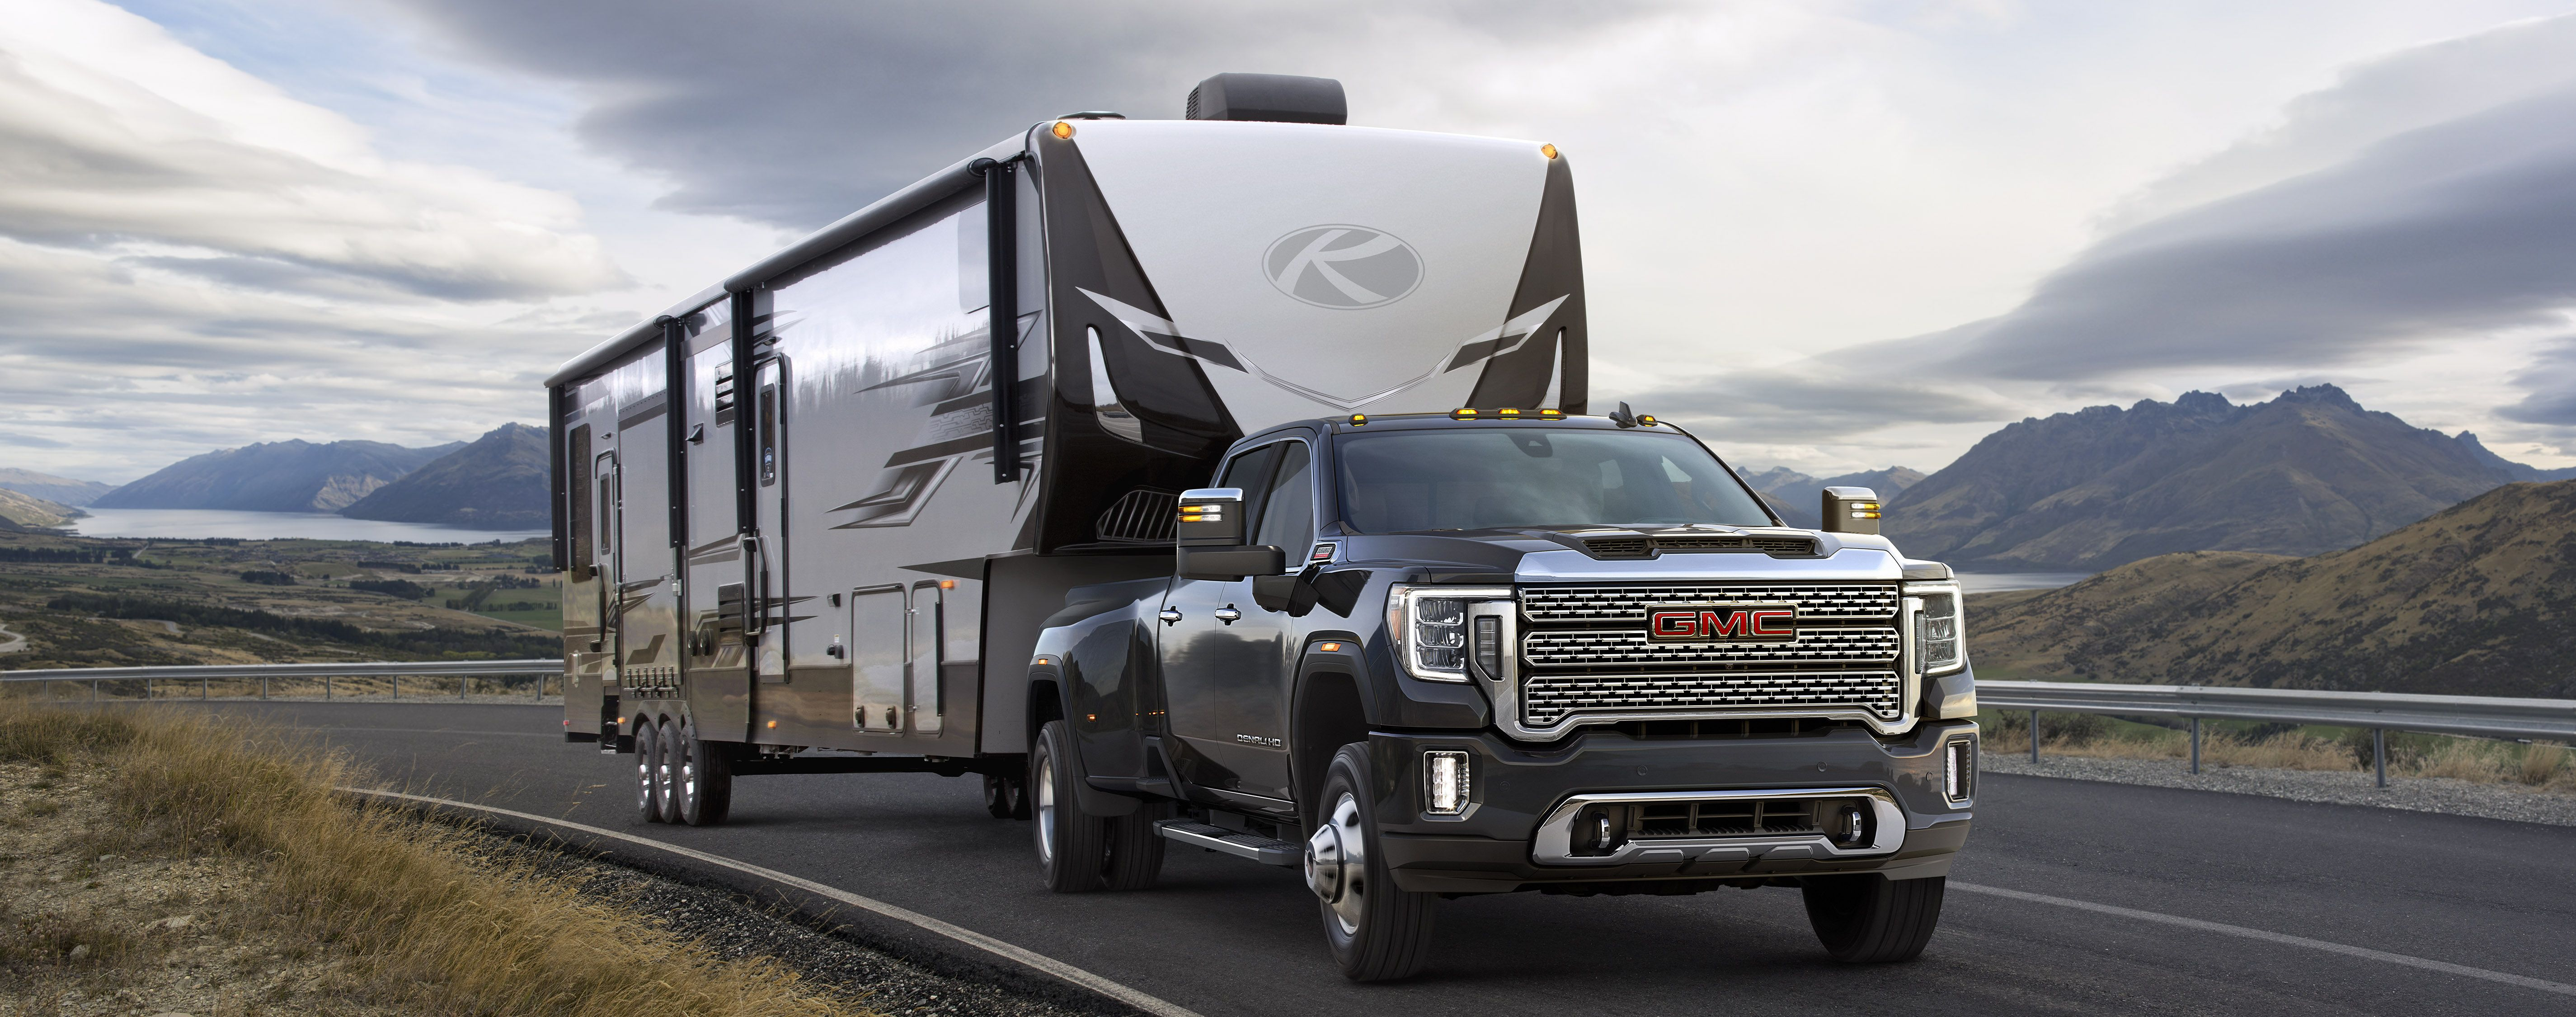 30 000 Pound Towing Comparison Gmc Sierra 3500 Vs Ford F 350ow